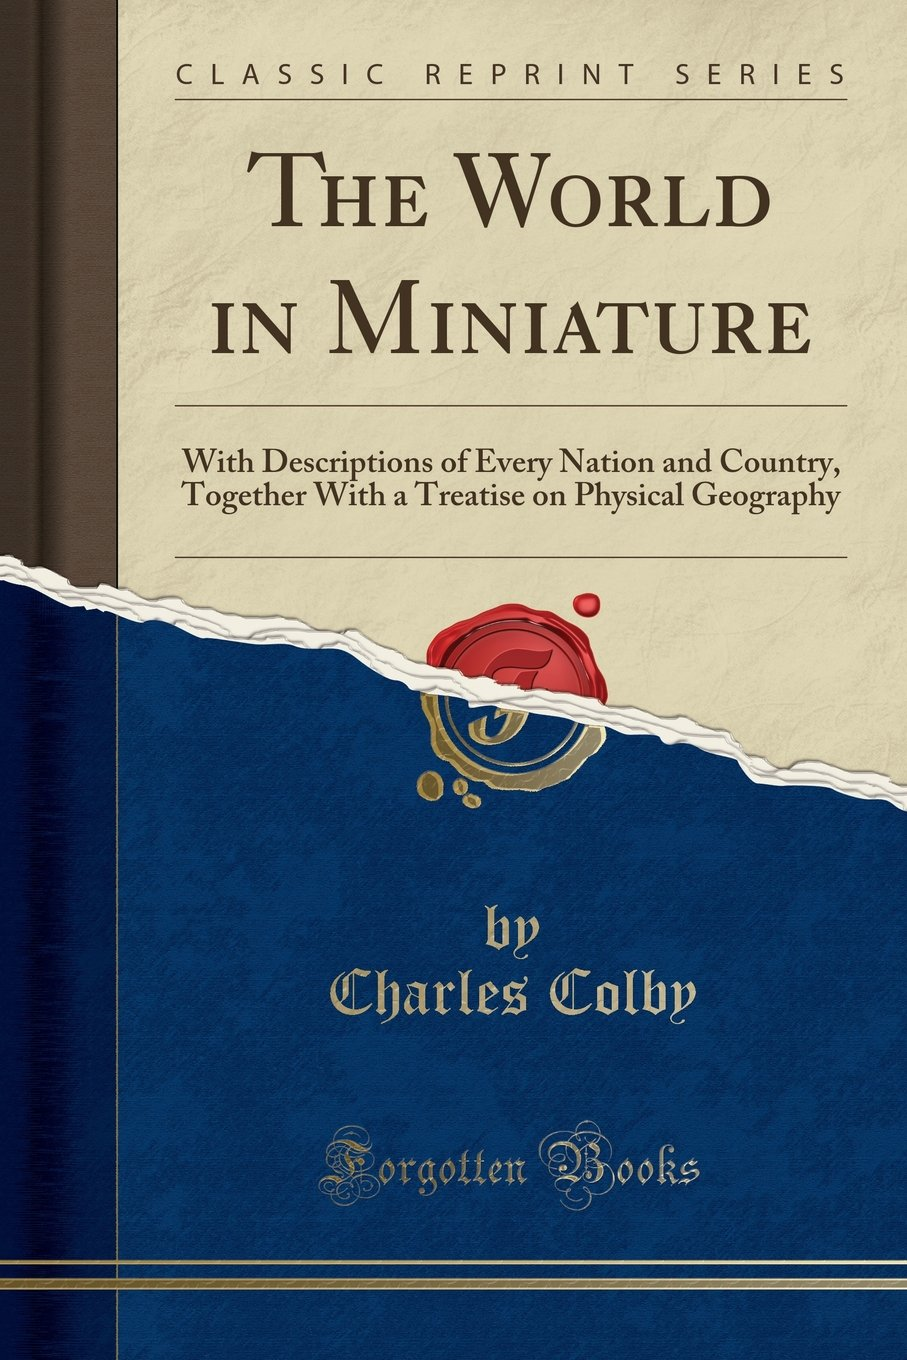 Read Online The World in Miniature: With Descriptions of Every Nation and Country, Together With a Treatise on Physical Geography (Classic Reprint) ebook